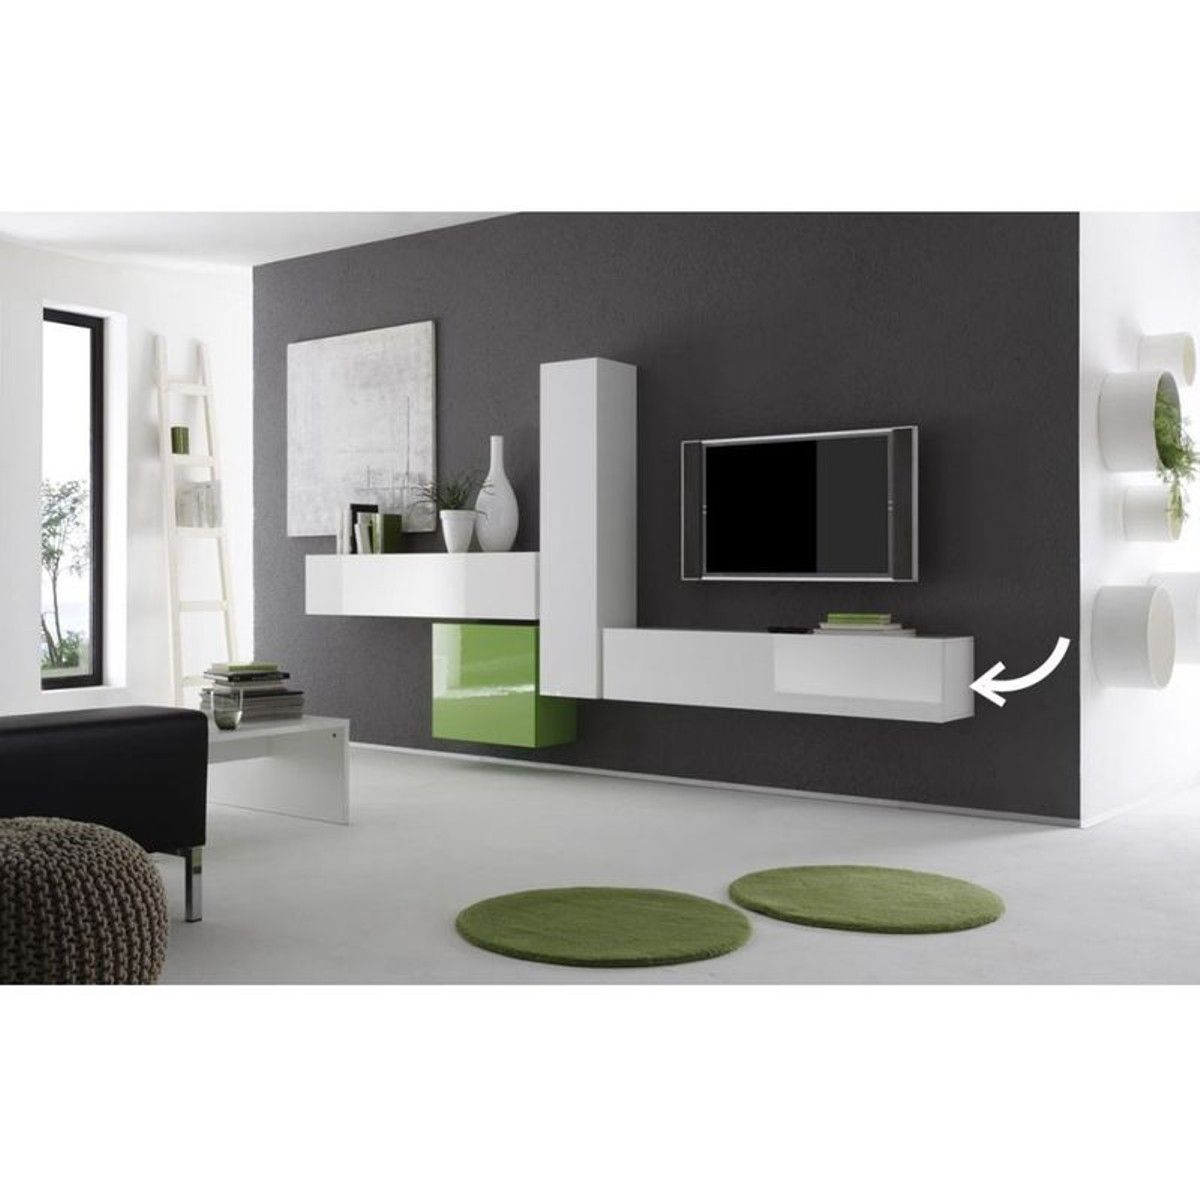 Meuble Tv Design Colored V2 Element Horizontal Meuble Tv Colonne  # Meuble Mural Design